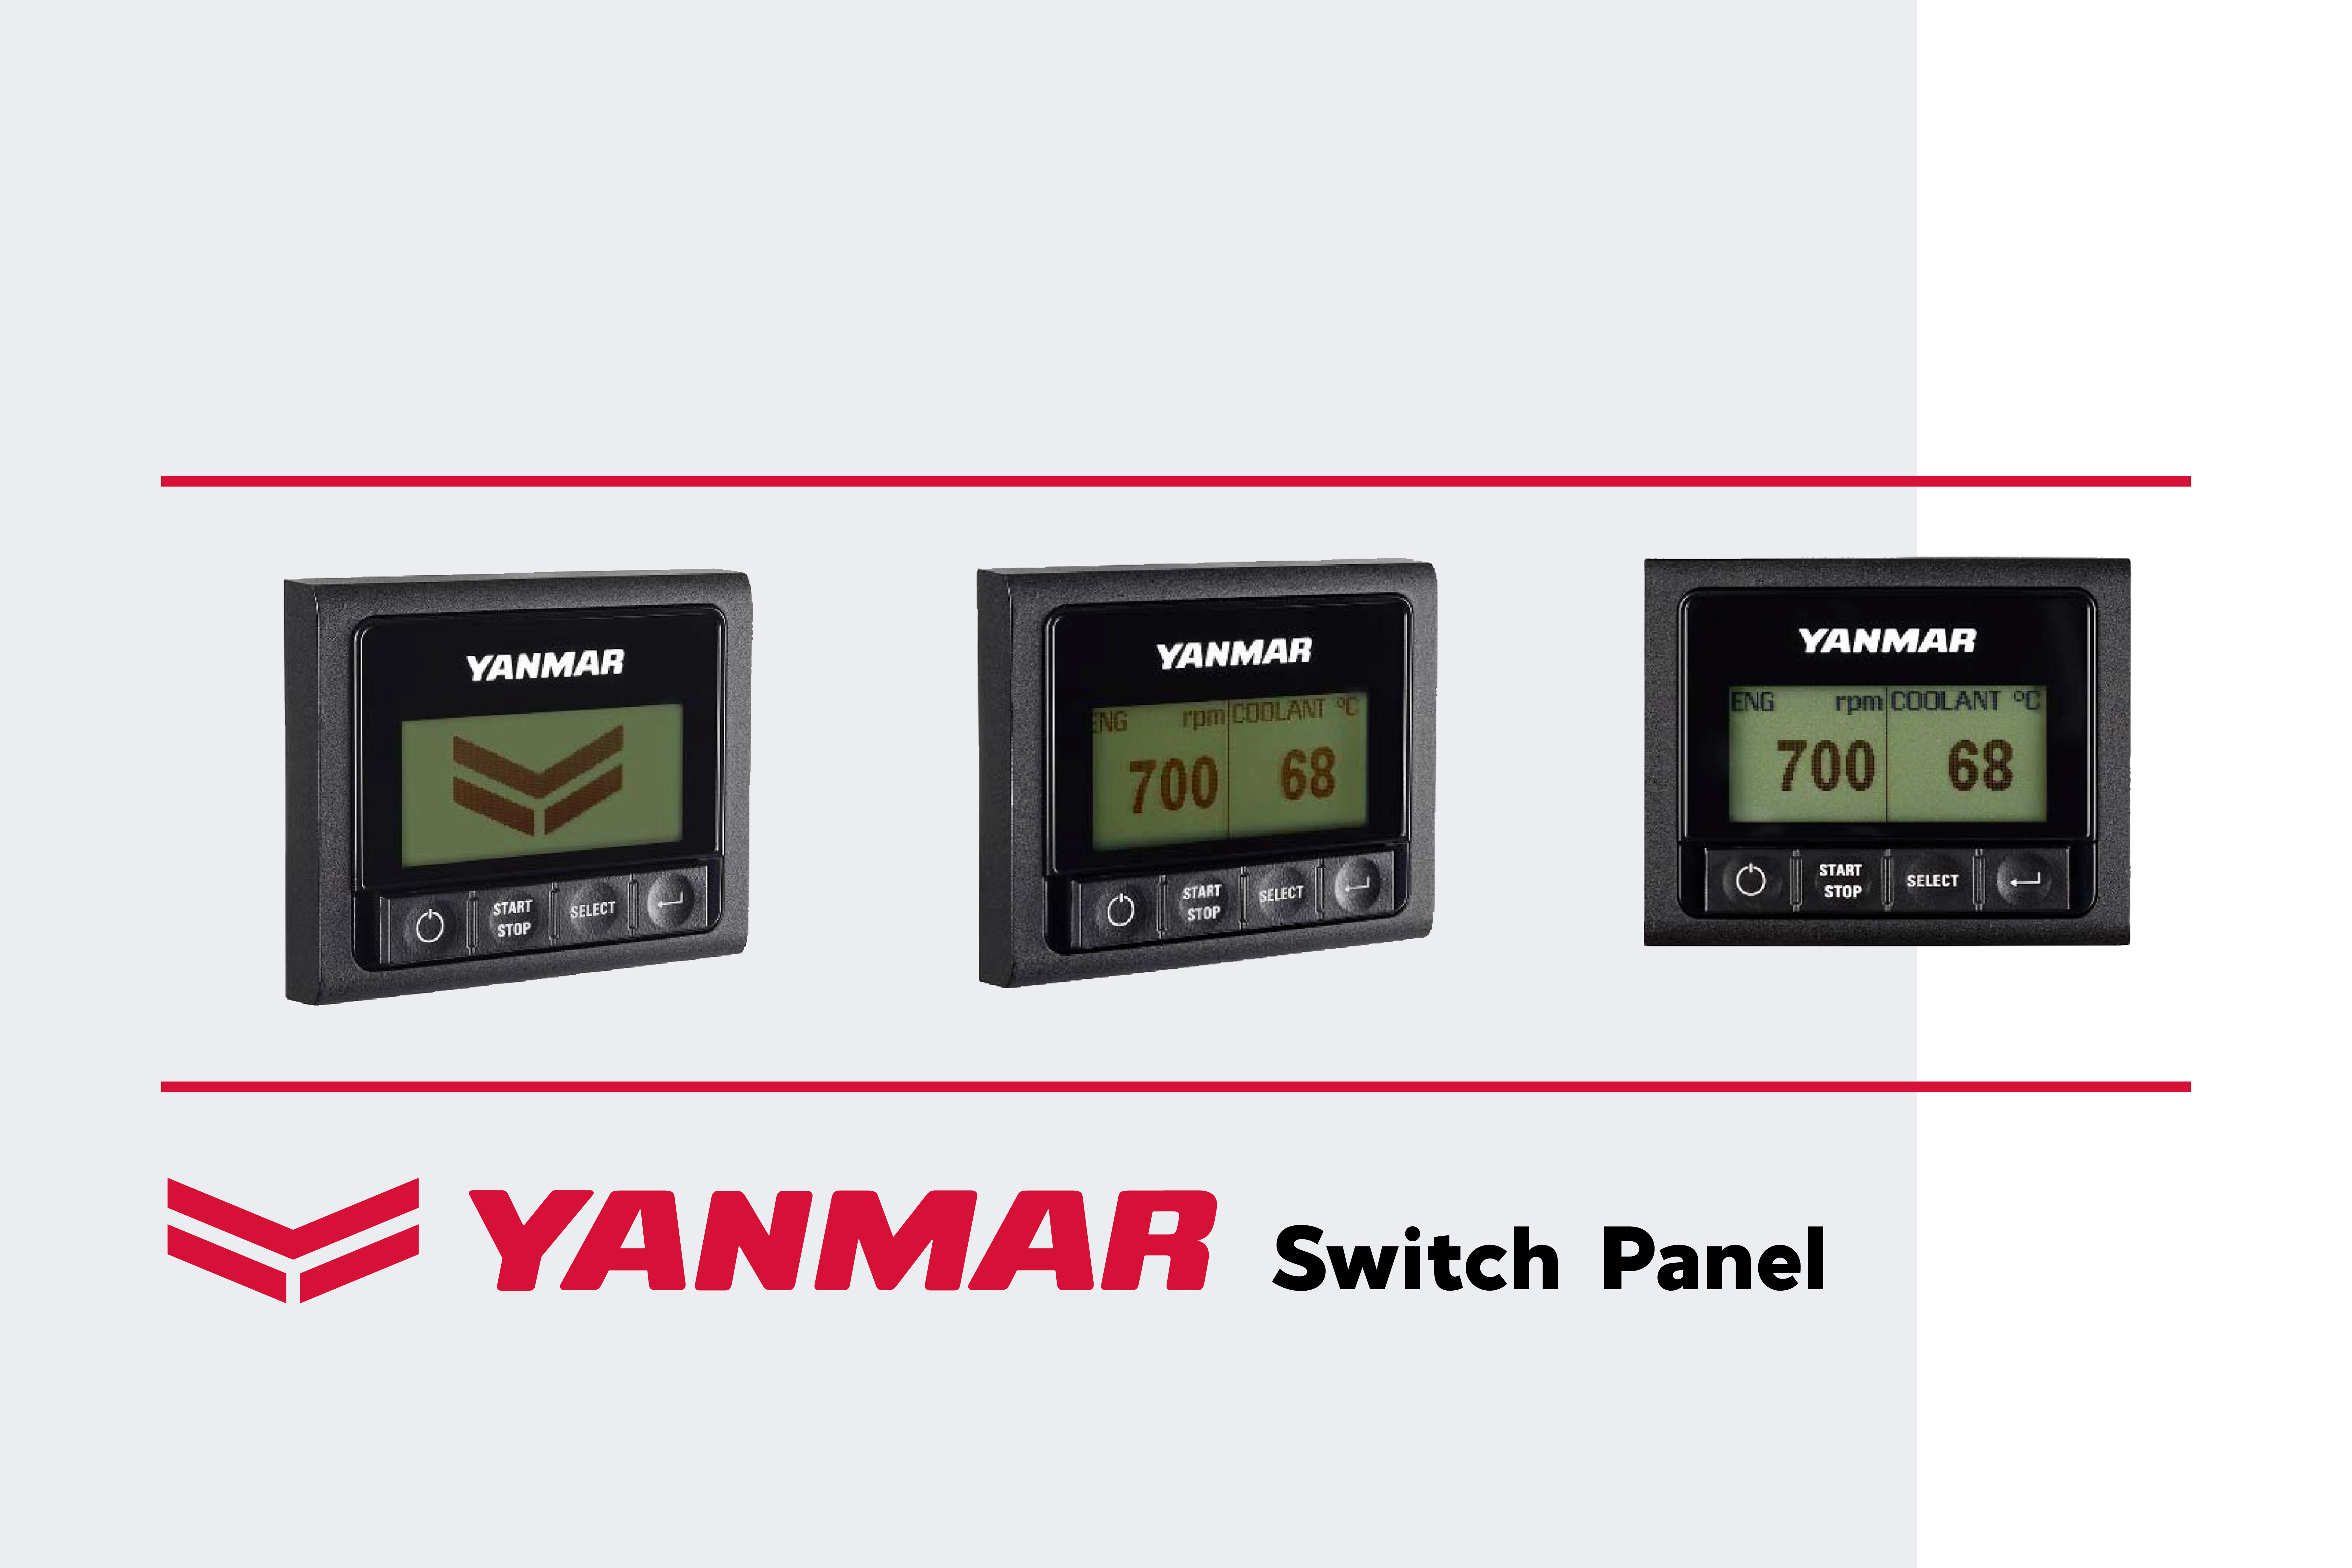 Yanmar introduce il nuovo Switch Panel Display